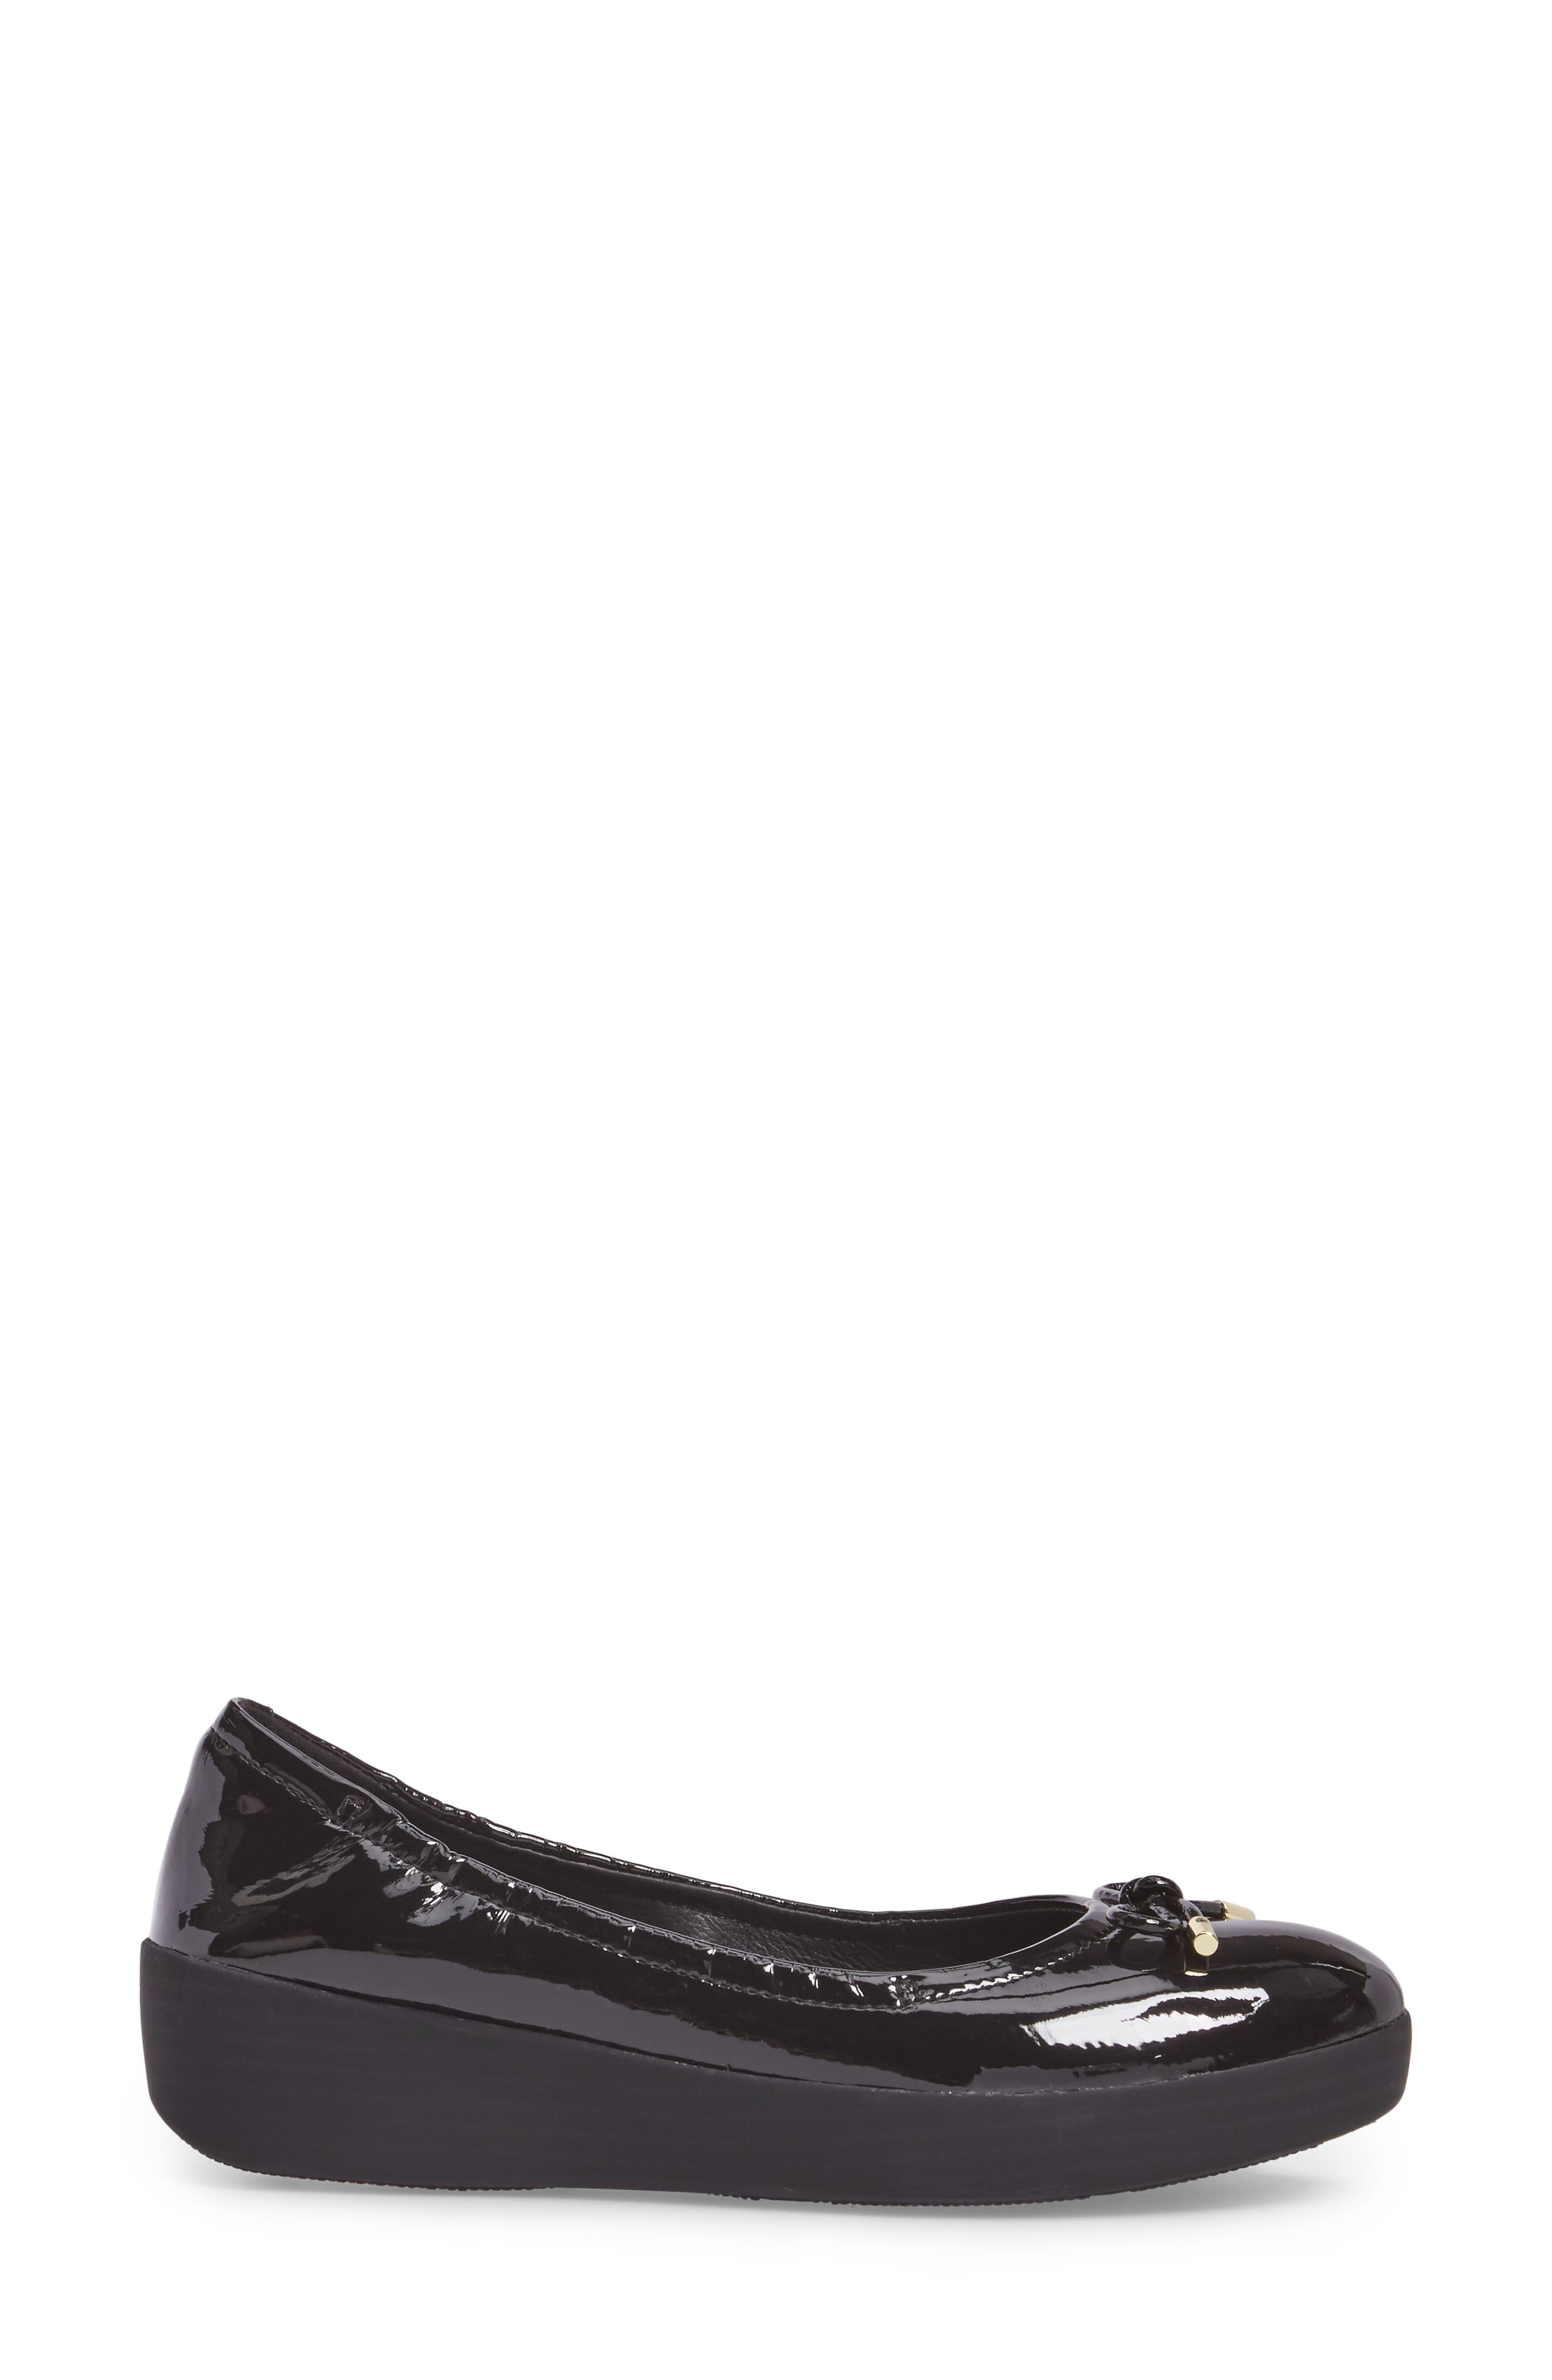 SuperBendy<sup>™</sup> Ballet Flat,                             Alternate thumbnail 3, color,                             Black Faux Patent